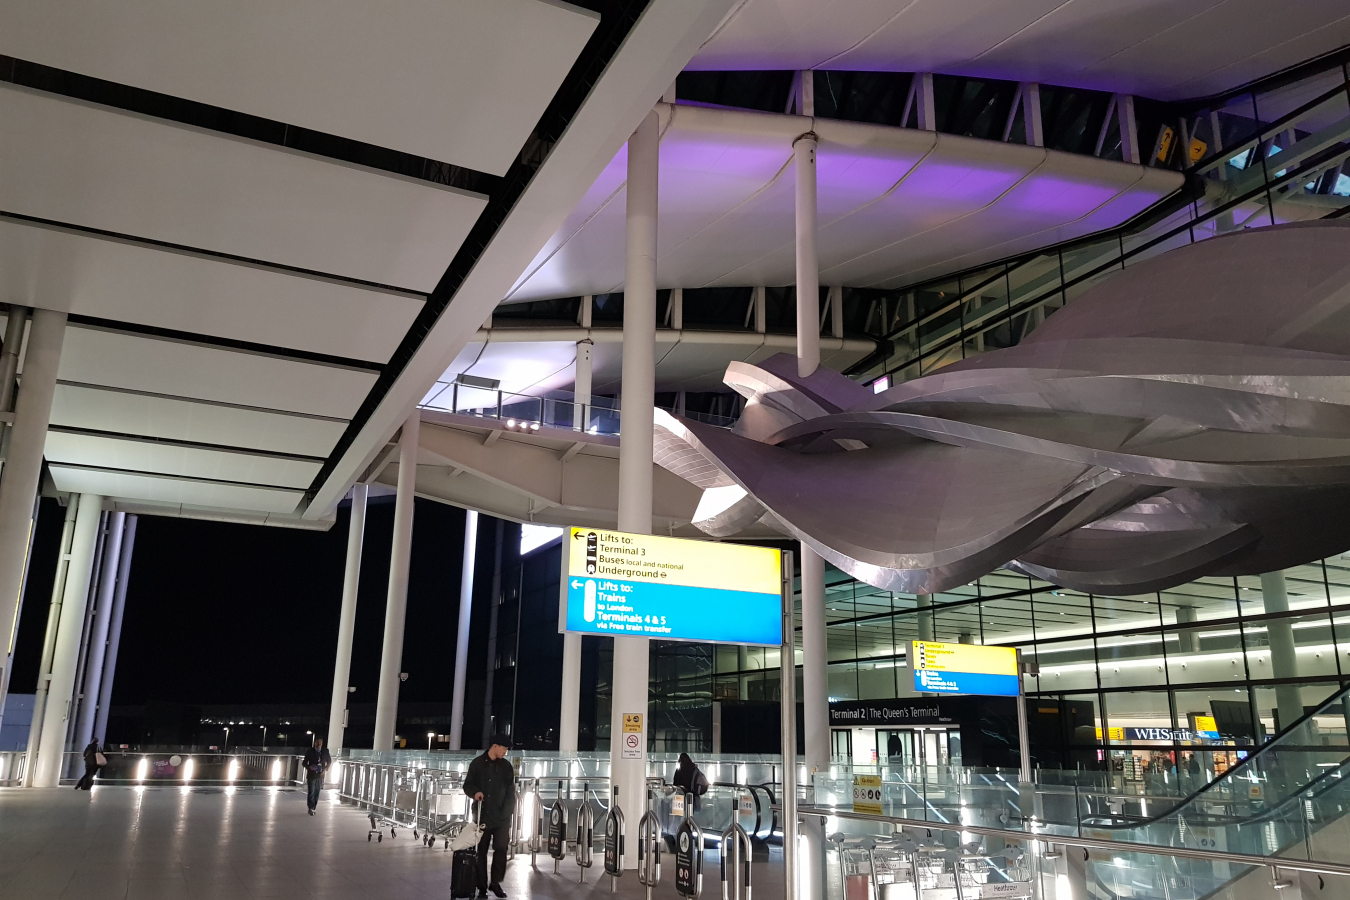 Heathrow Airport Arrivals unusually quiet 15 March 2020